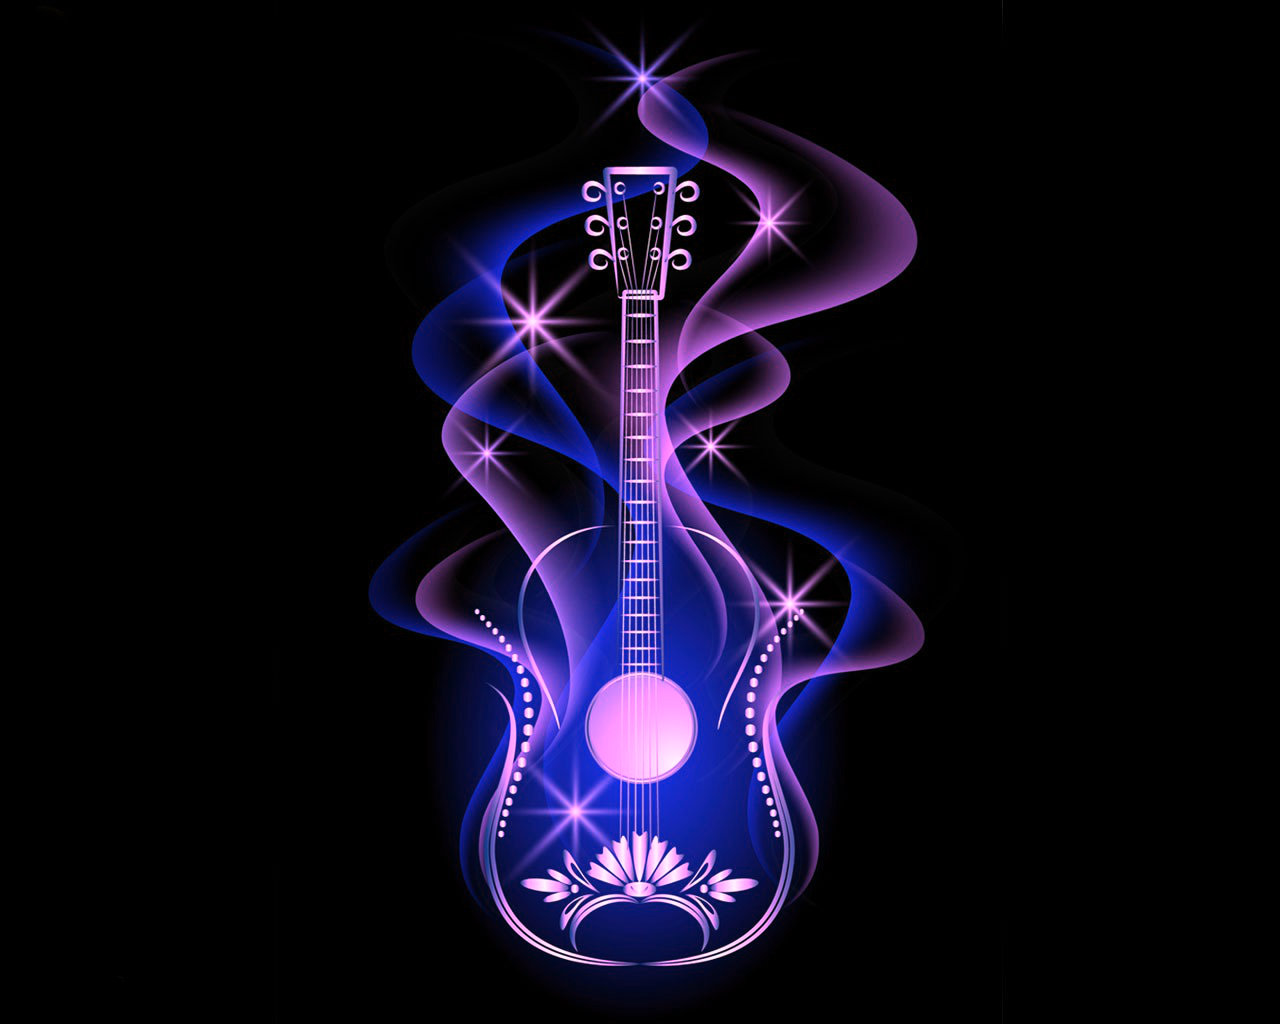 Cool Puple Glowing Guitar Wallpapers Hd Guitar With Cool Background 1280x1024 Download Hd Wallpaper Wallpapertip